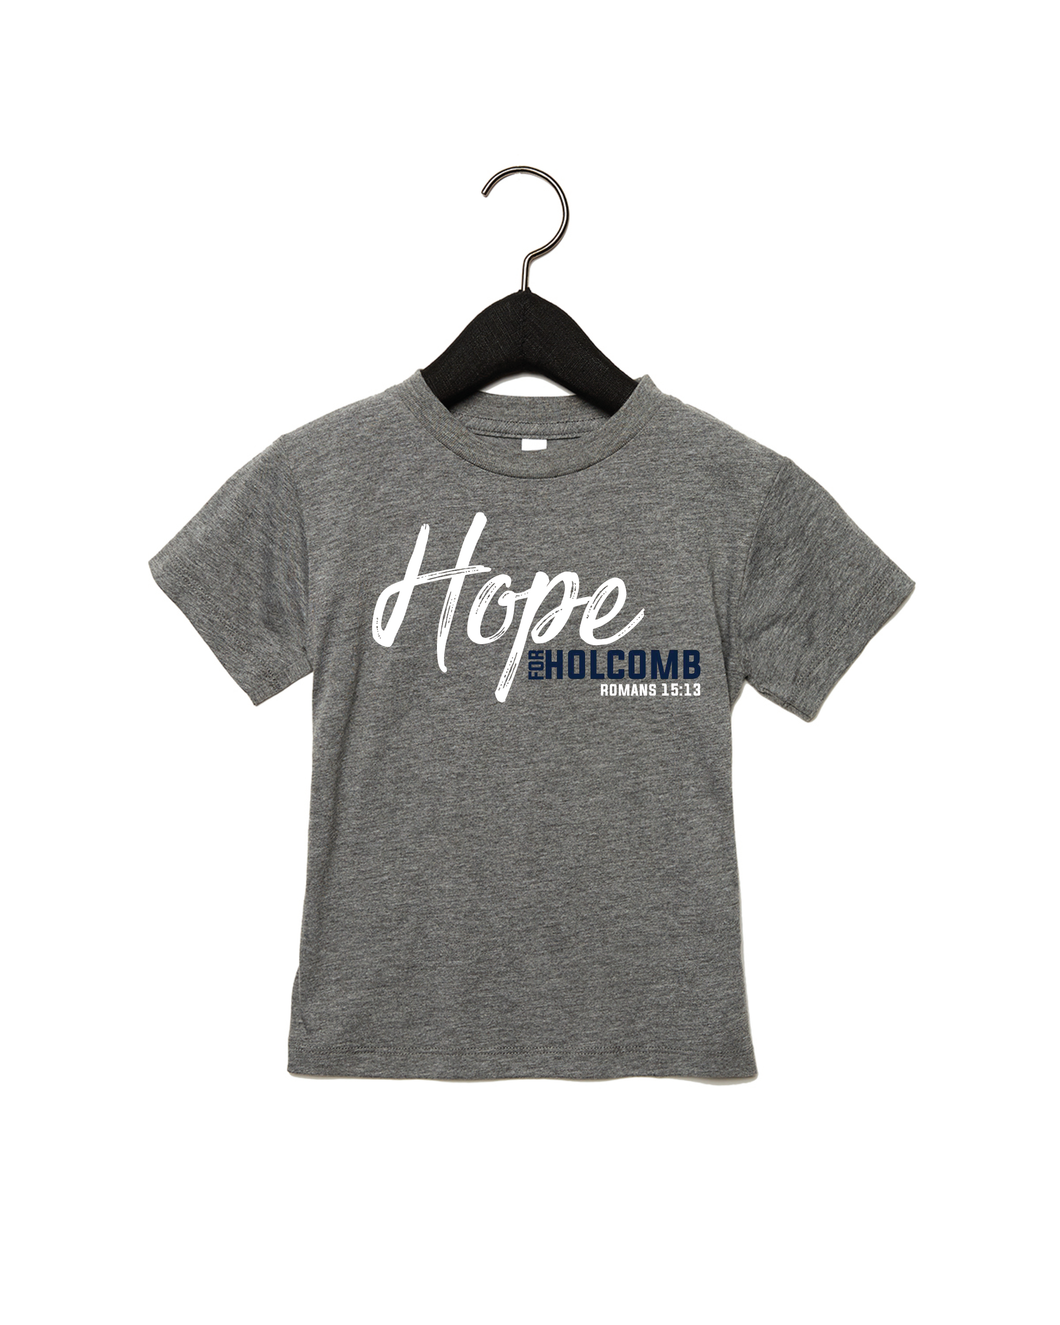 Hope for Holcomb shirt - Infant/Toddler